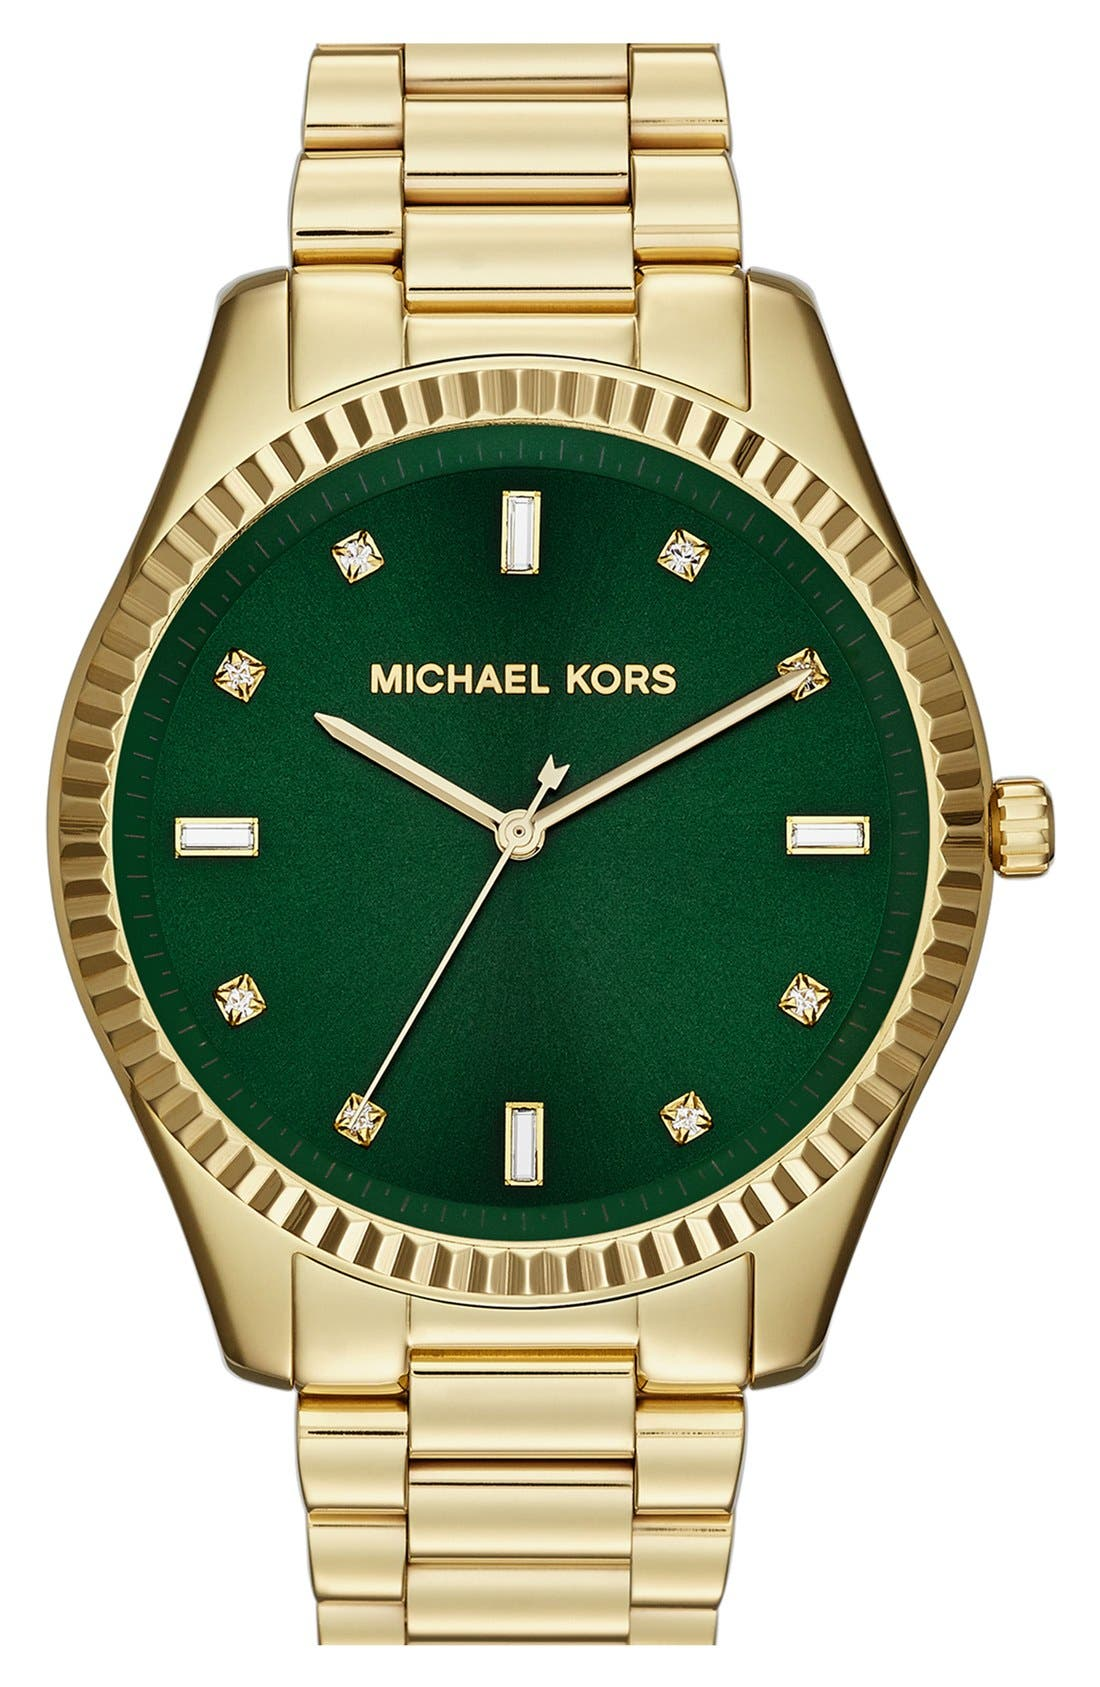 Main Image - Michael Kors 'Blake' Bracelet Watch, 42mm